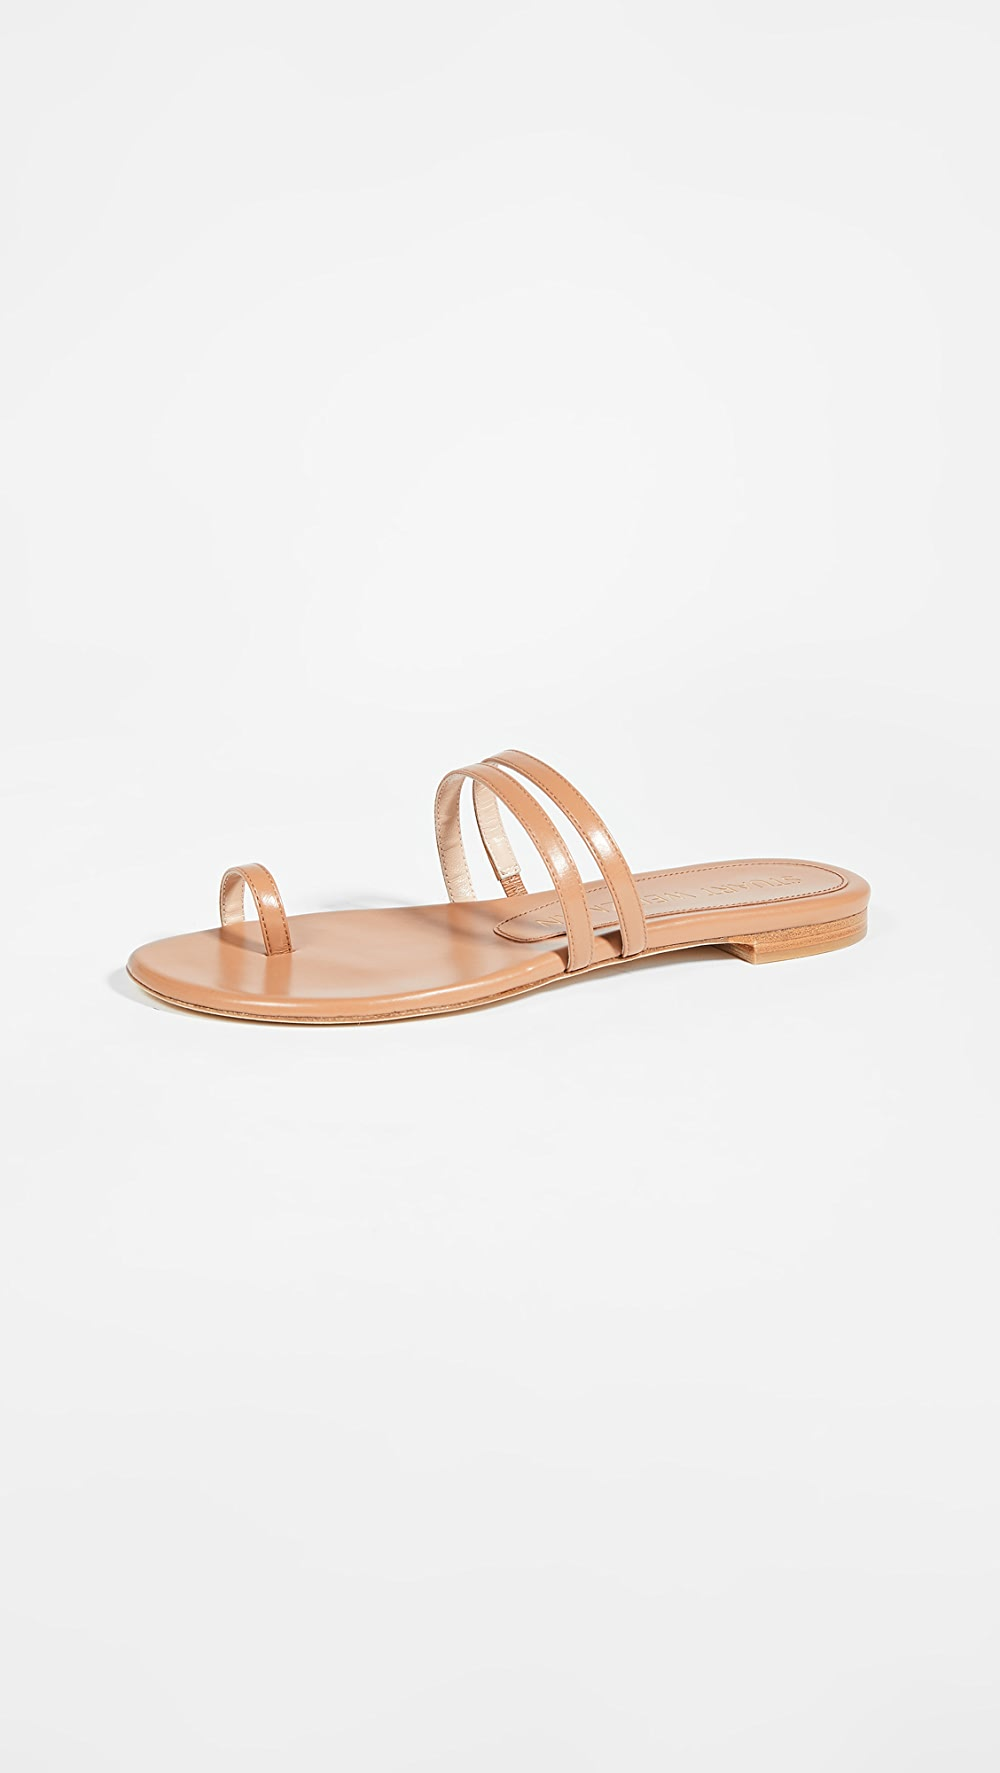 Systematic Stuart Weitzman - Leonita Slide Sandals With The Most Up-To-Date Equipment And Techniques